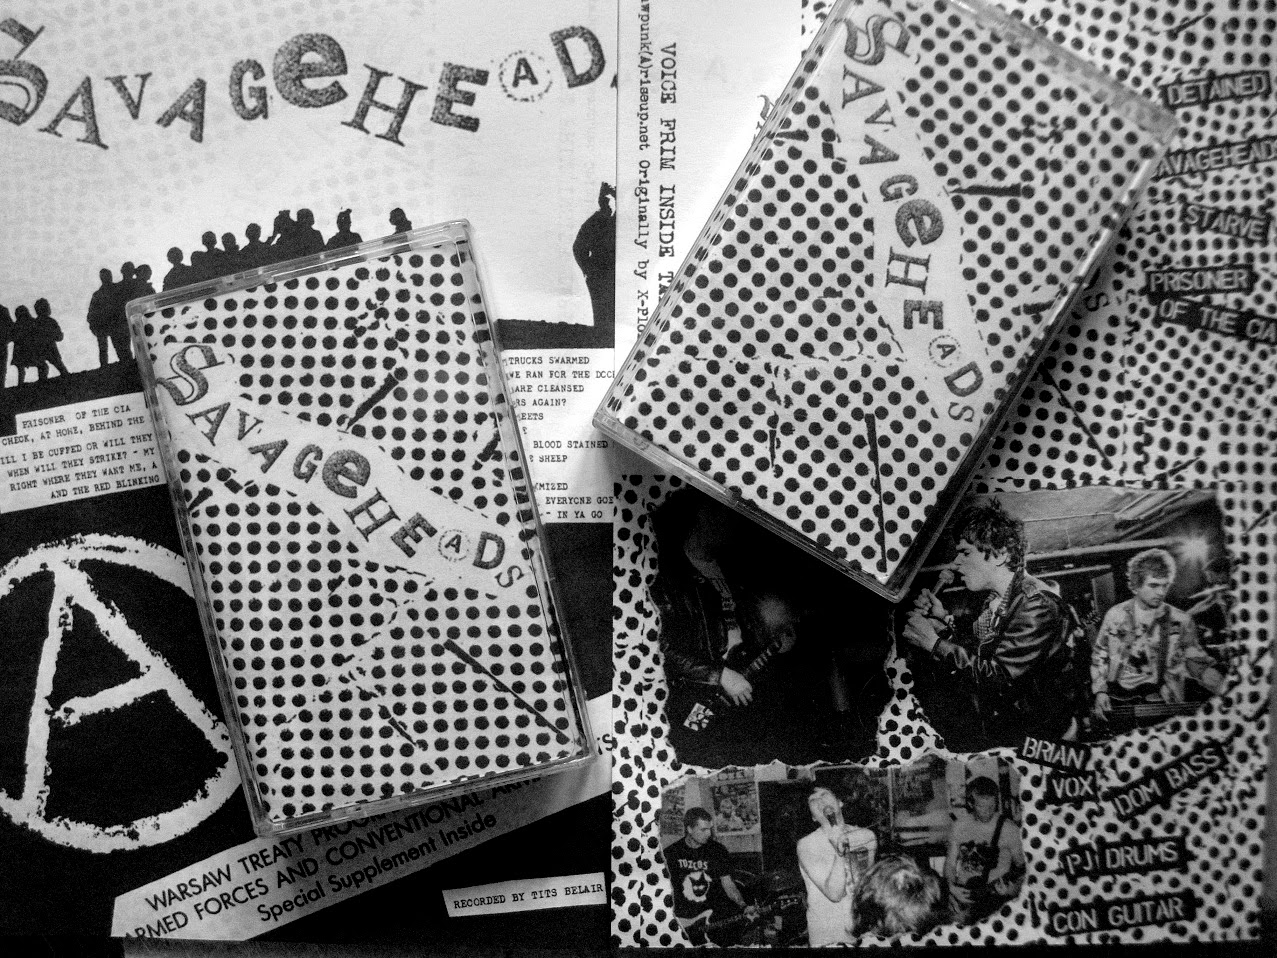 SAVAGEHEADS - DEMO 2013 REISSUE TAPE